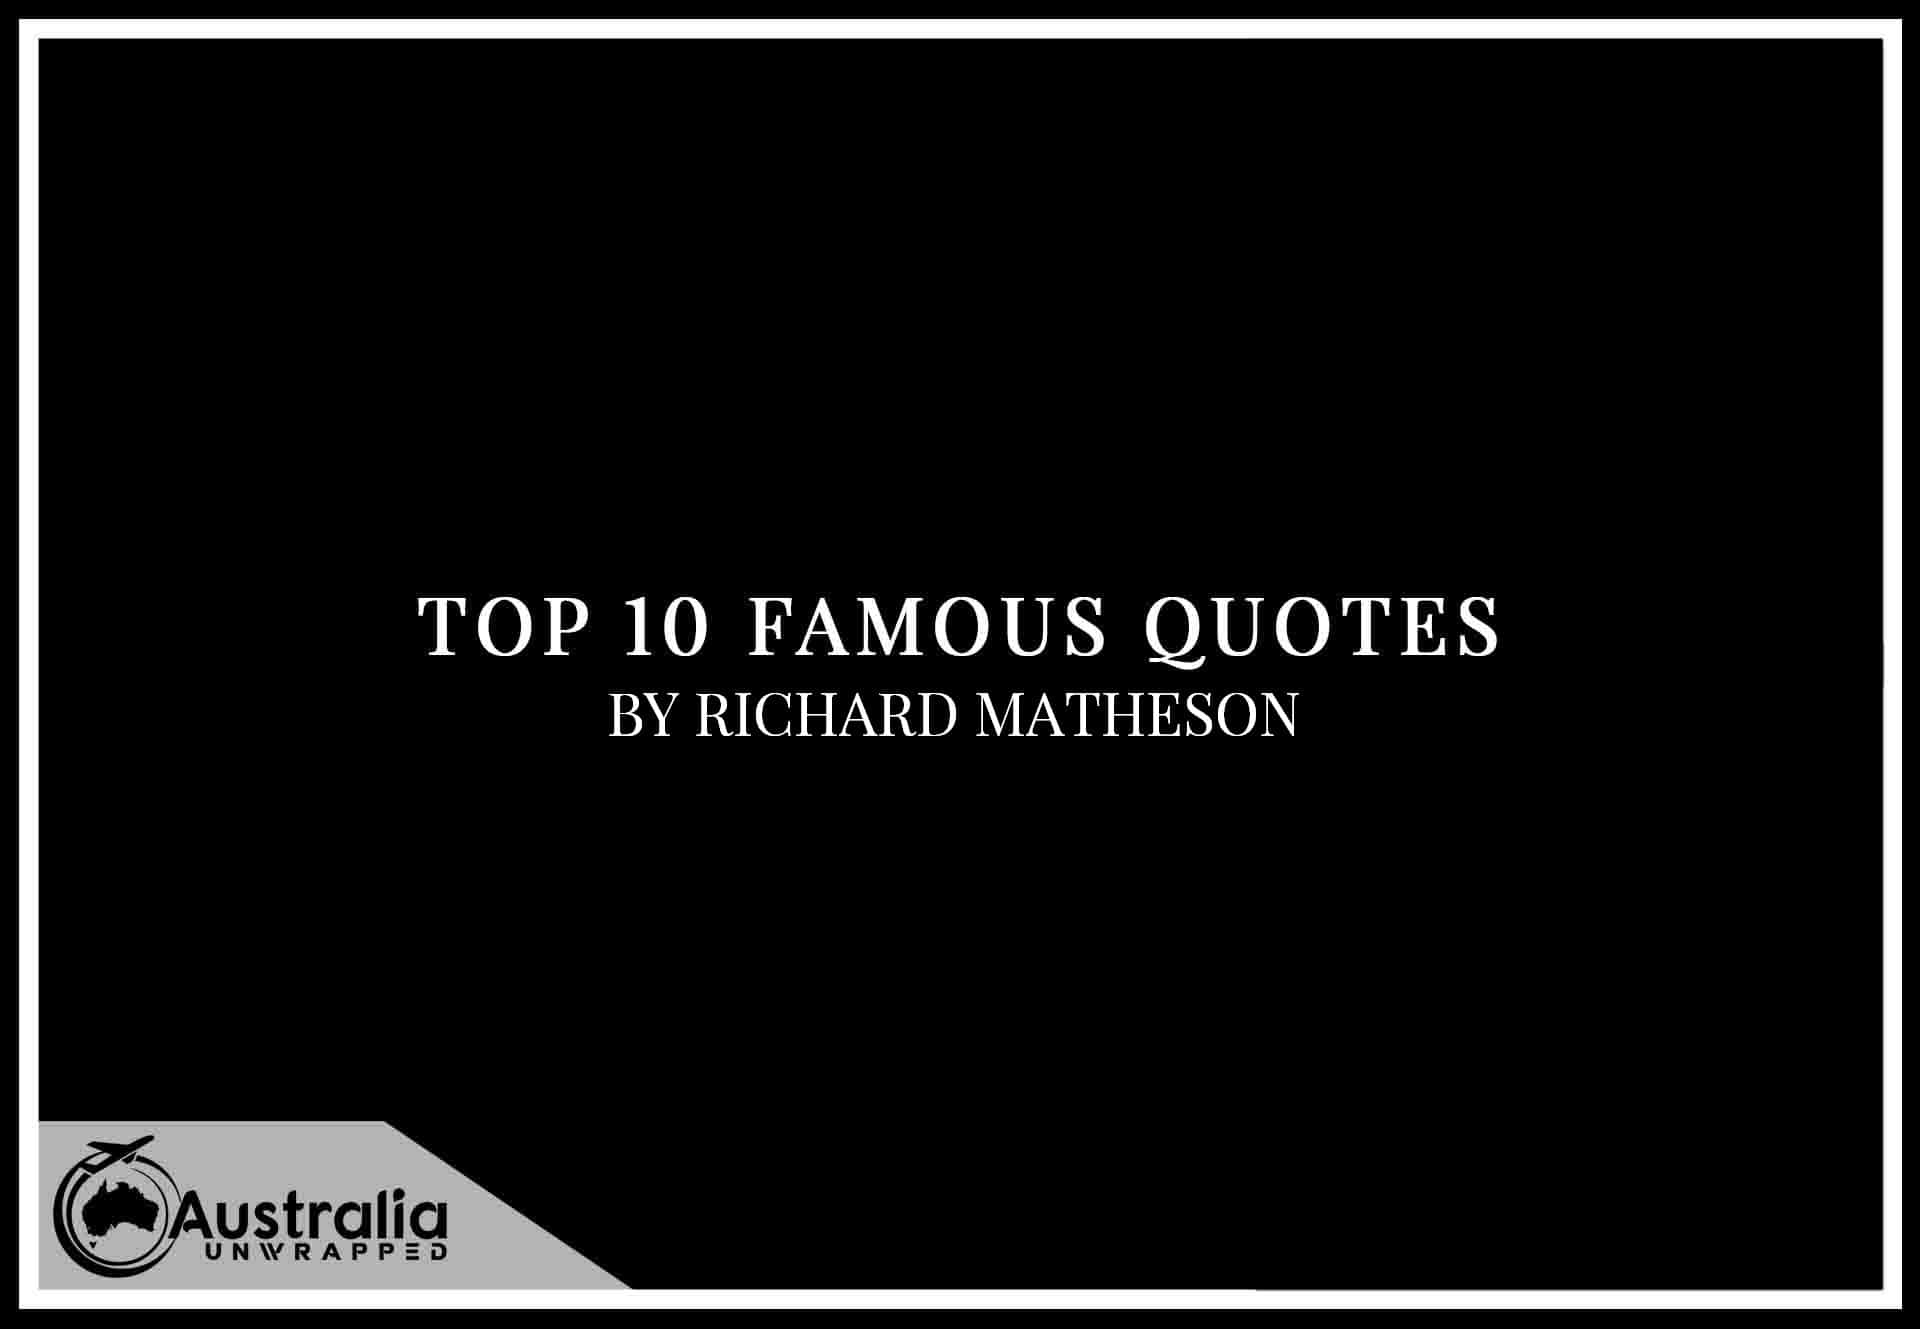 Richard Matheson's Top 10 Popular and Famous Quotes